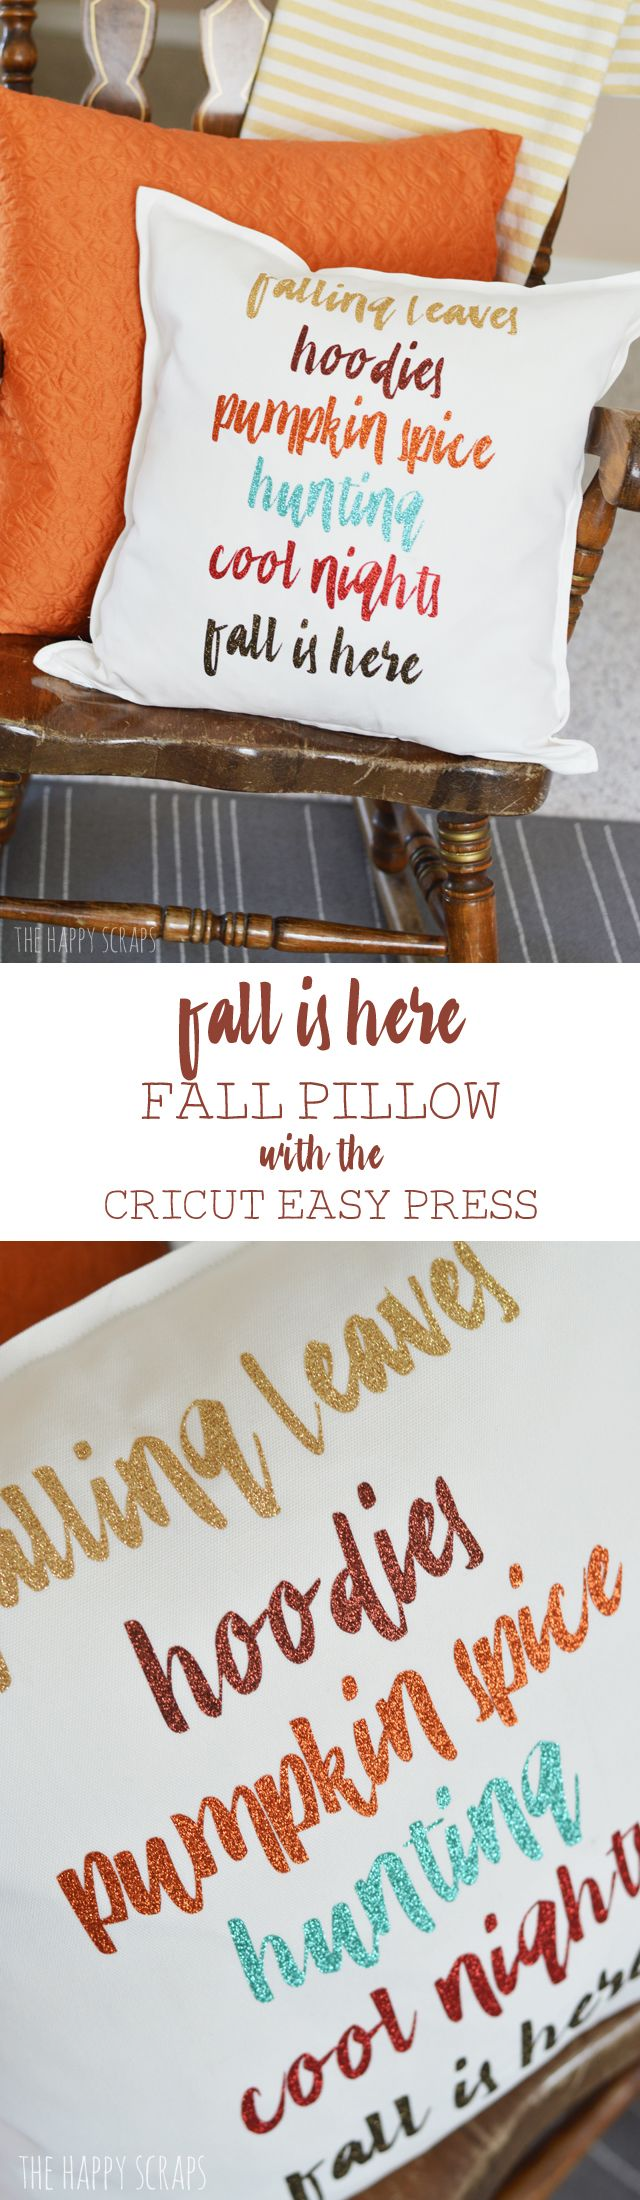 Fall Is Here   Fall Pillow With The Cricut EasyPress